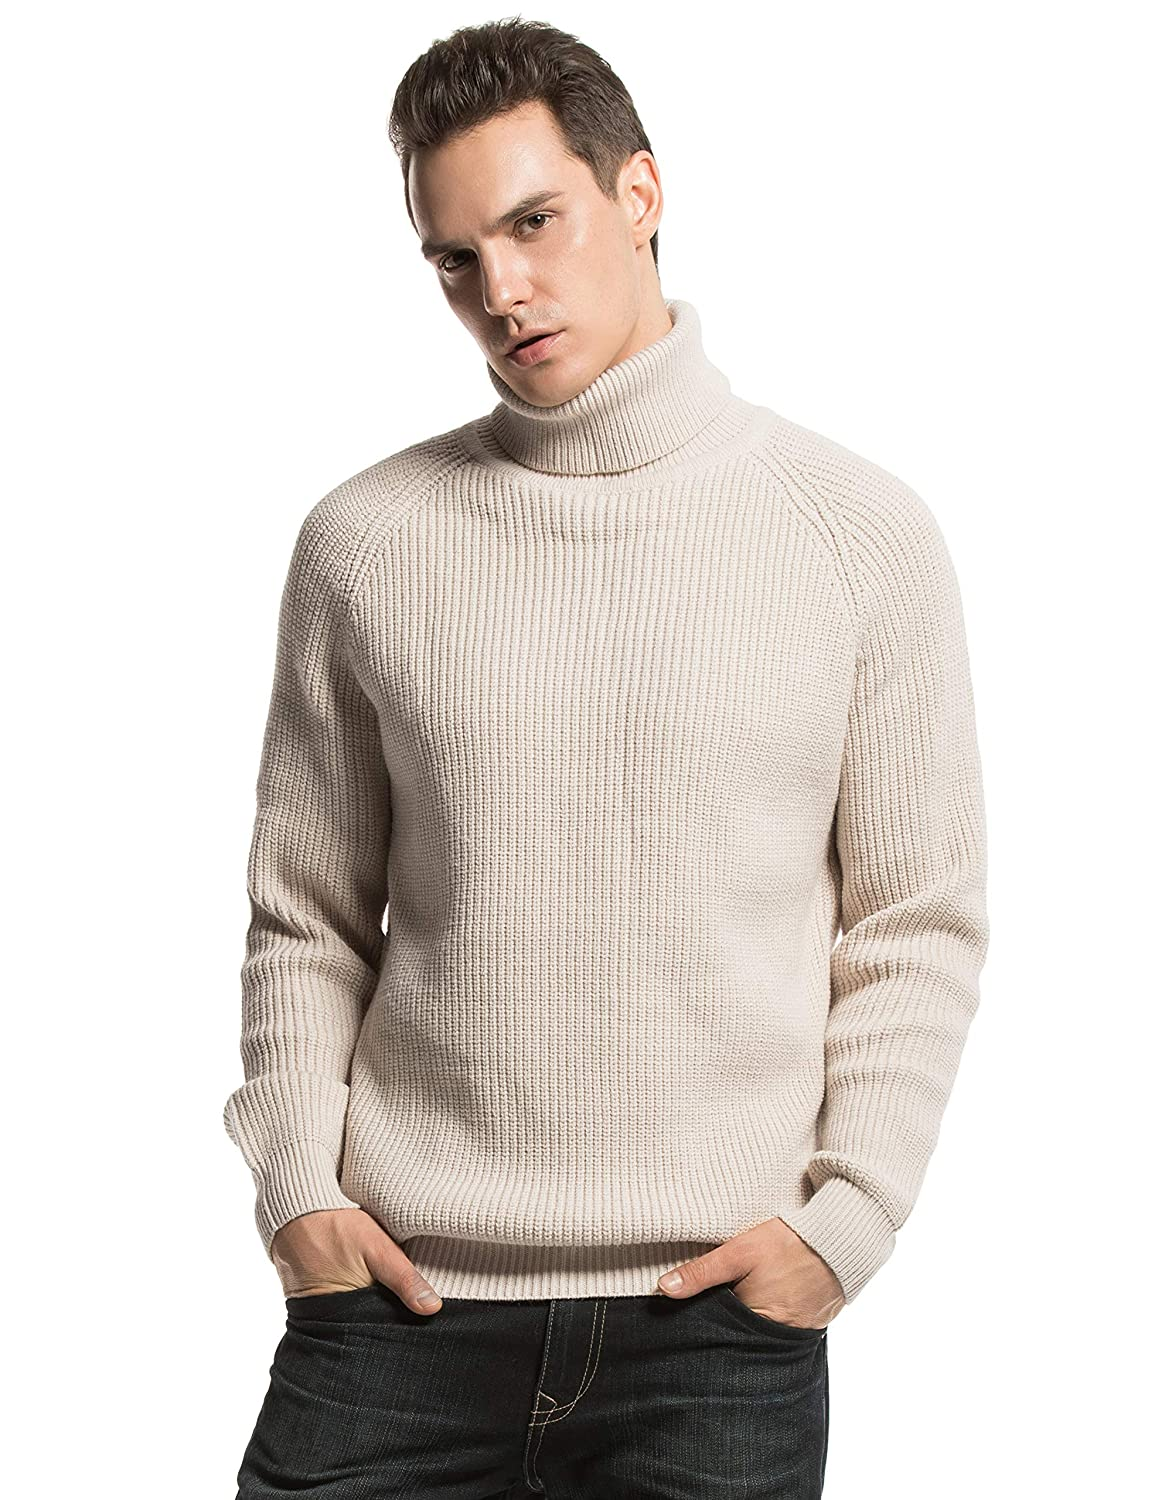 b609903b0a8a PrettyGuide Men s Turtleneck Sweater Ribbed Cable Knit Pullover Sweater  Tops at Amazon Men s Clothing store